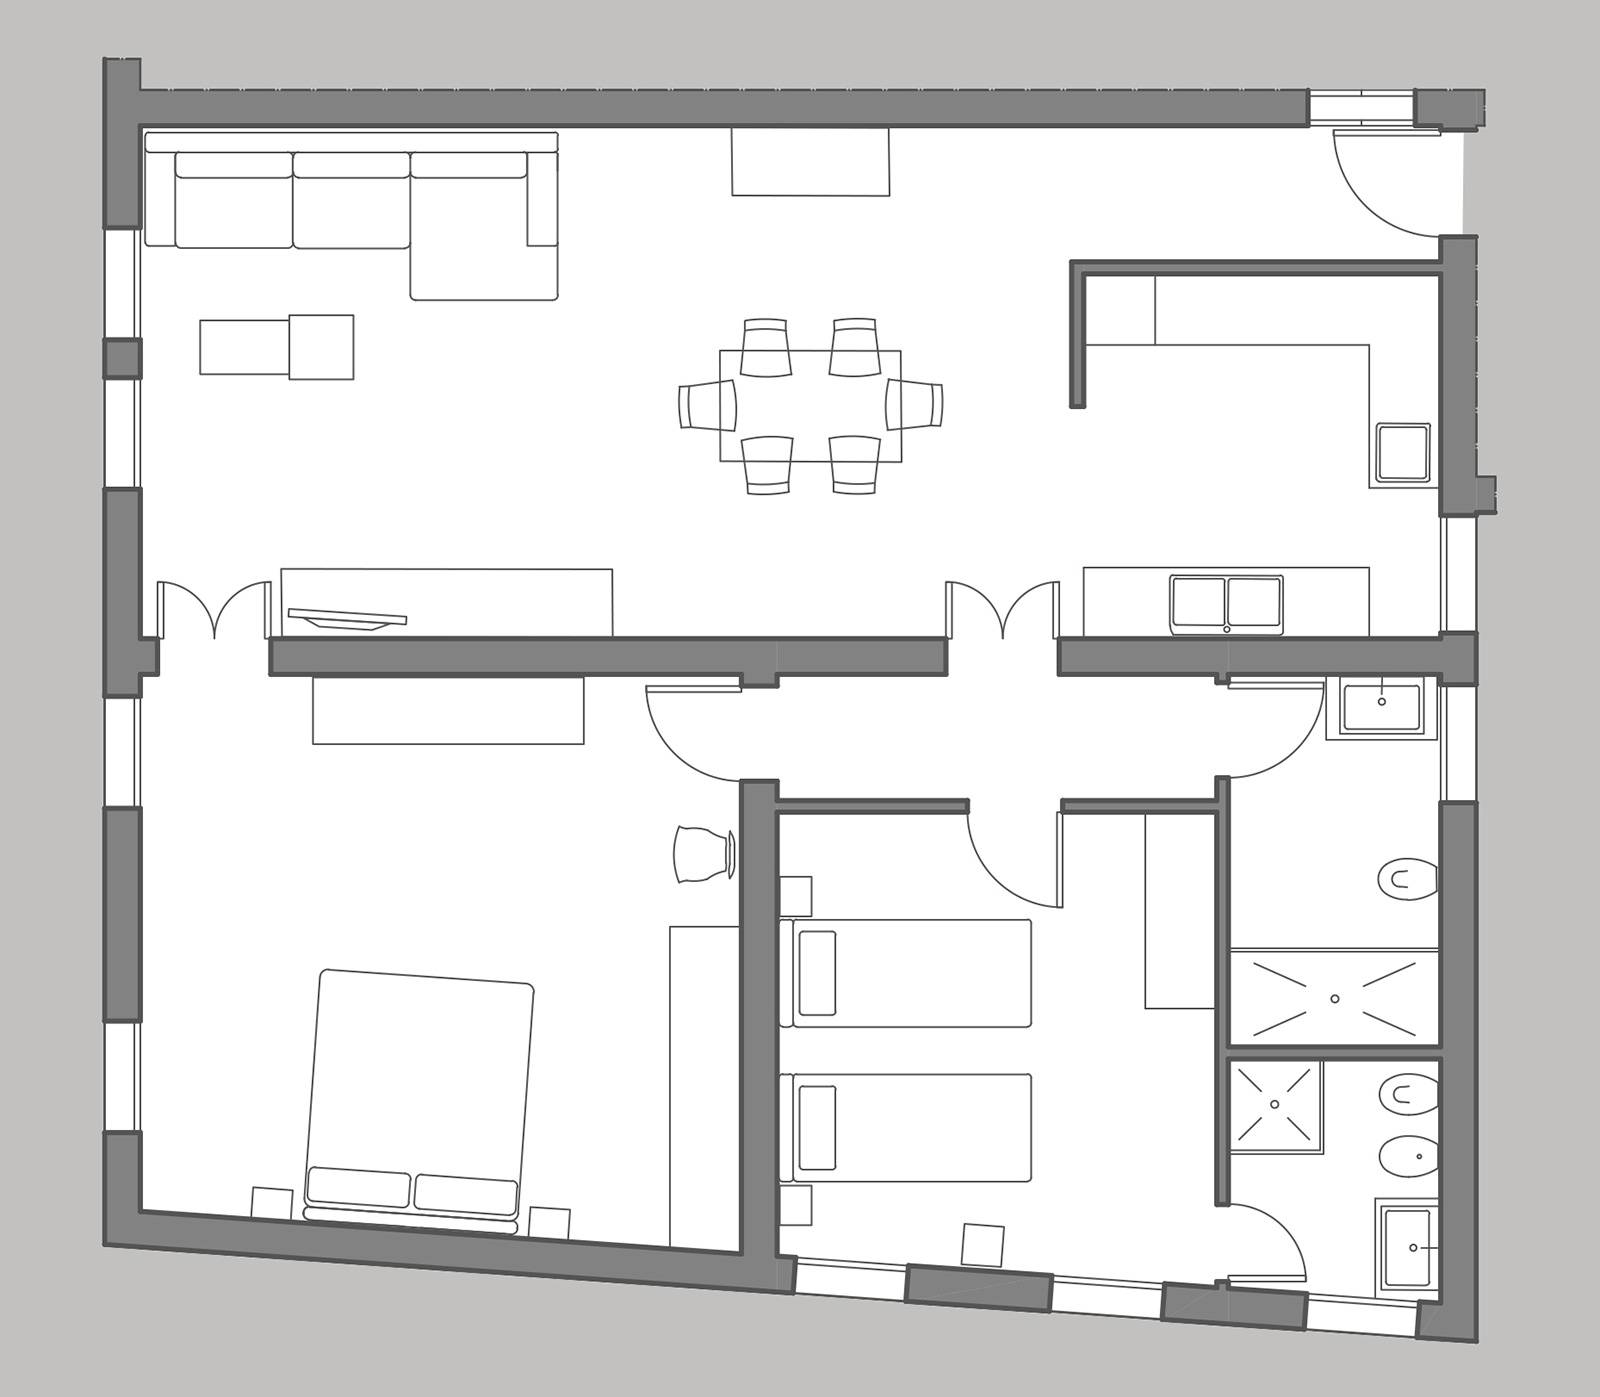 Madama Butterfly floor plan